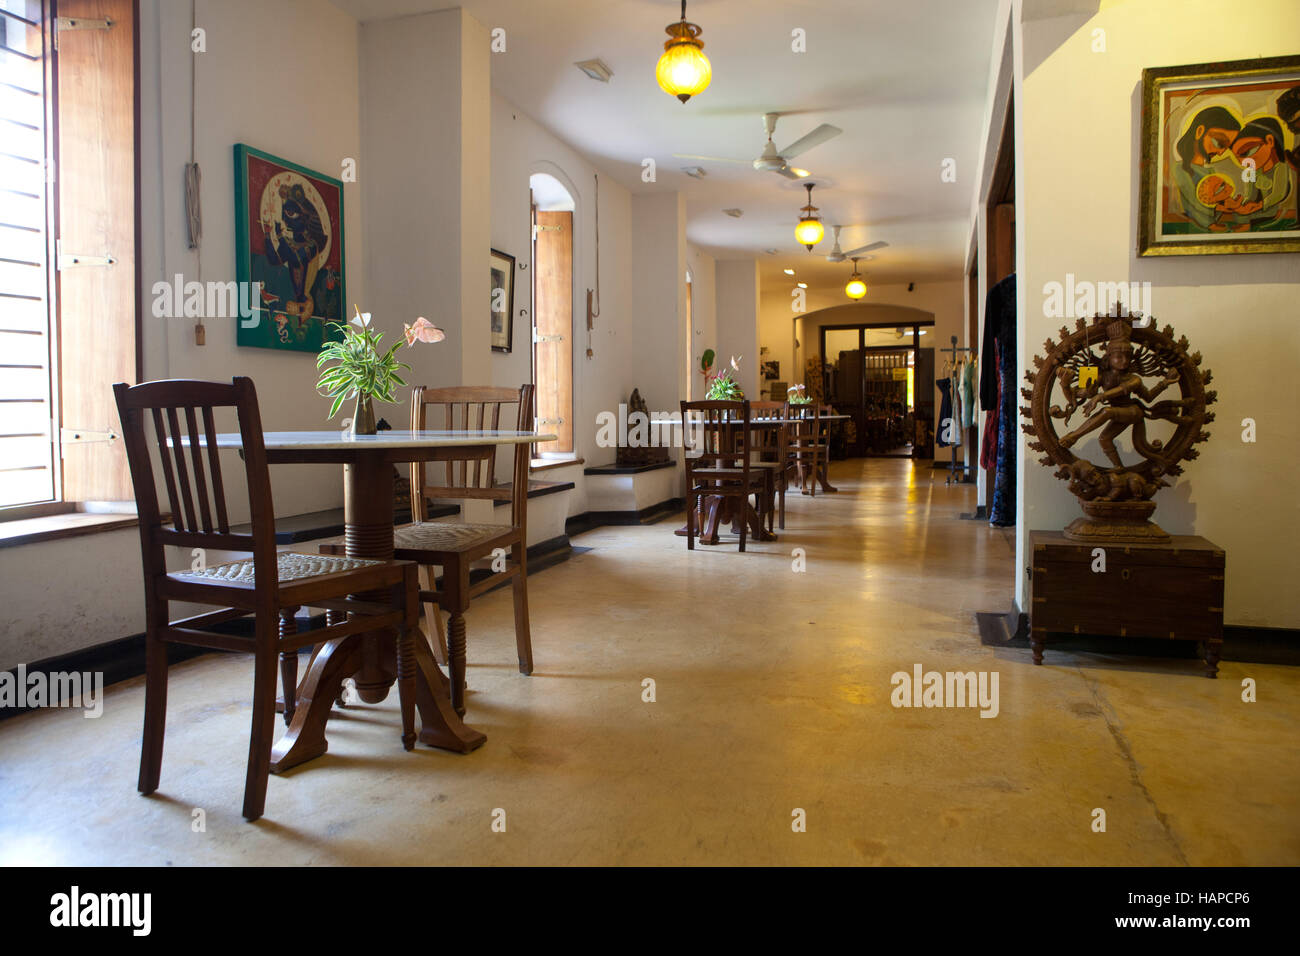 'Ethnic Passage' coffee shop and art gallery in Kochi, Kerala,India - Stock Image